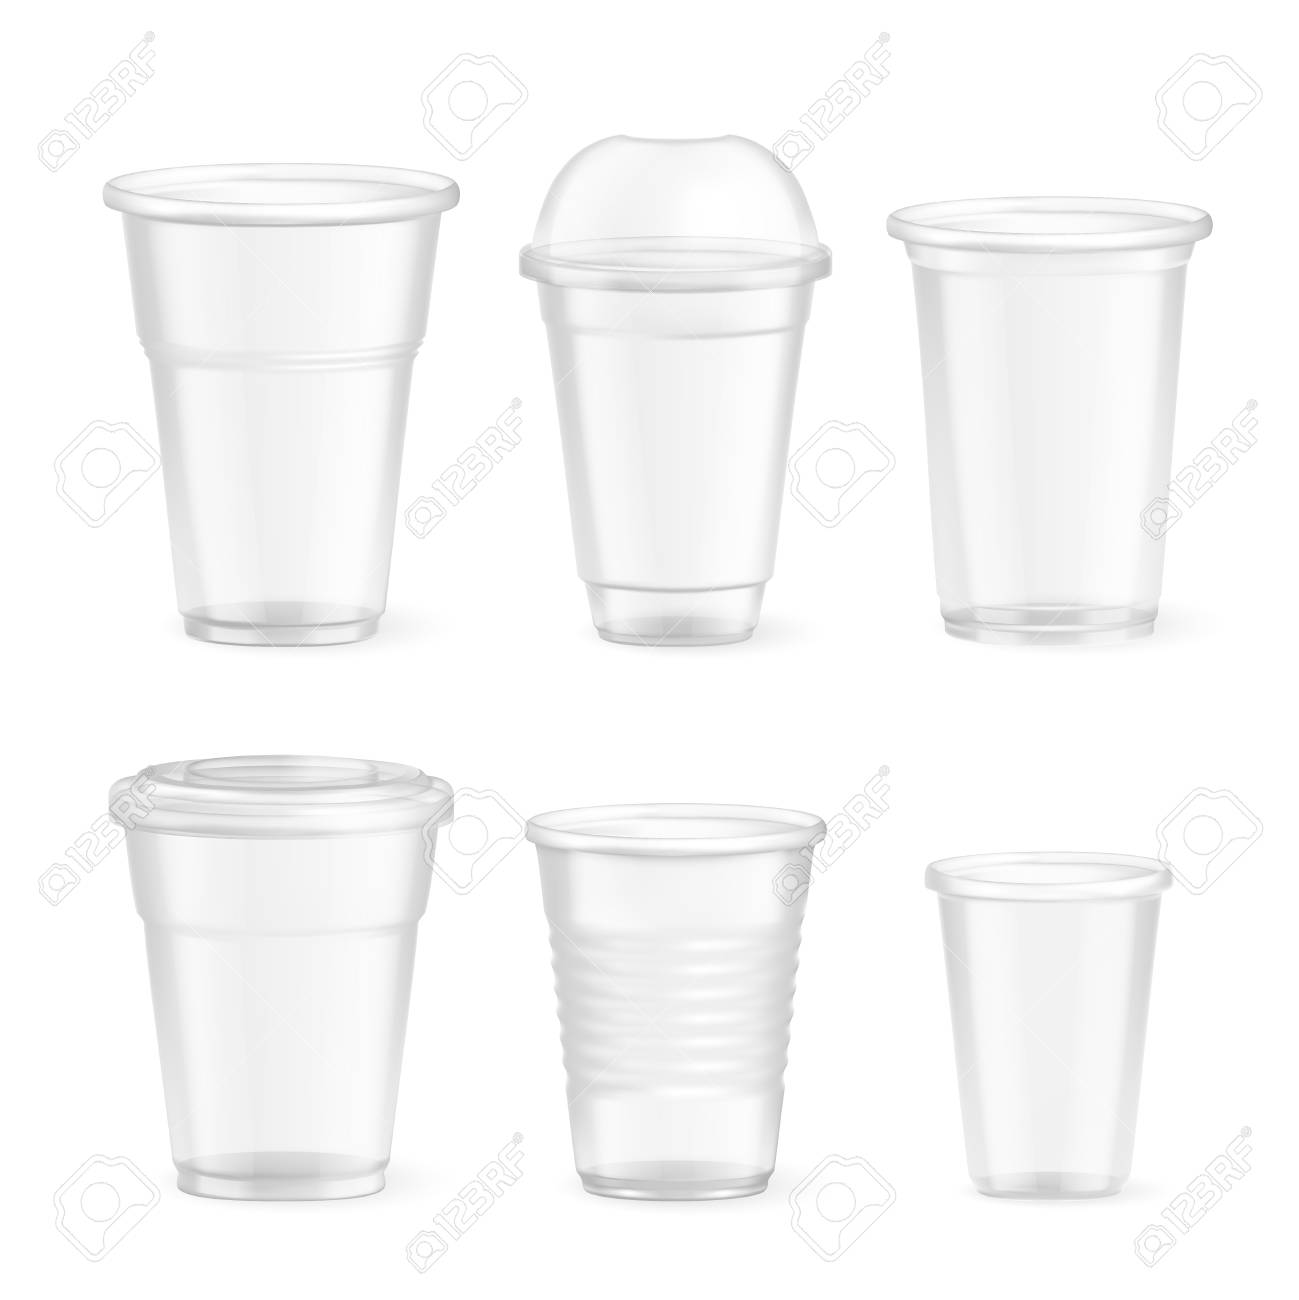 Set of realistic plastic disposable food glasses of various size on white background isolated vector illustration - 126337855